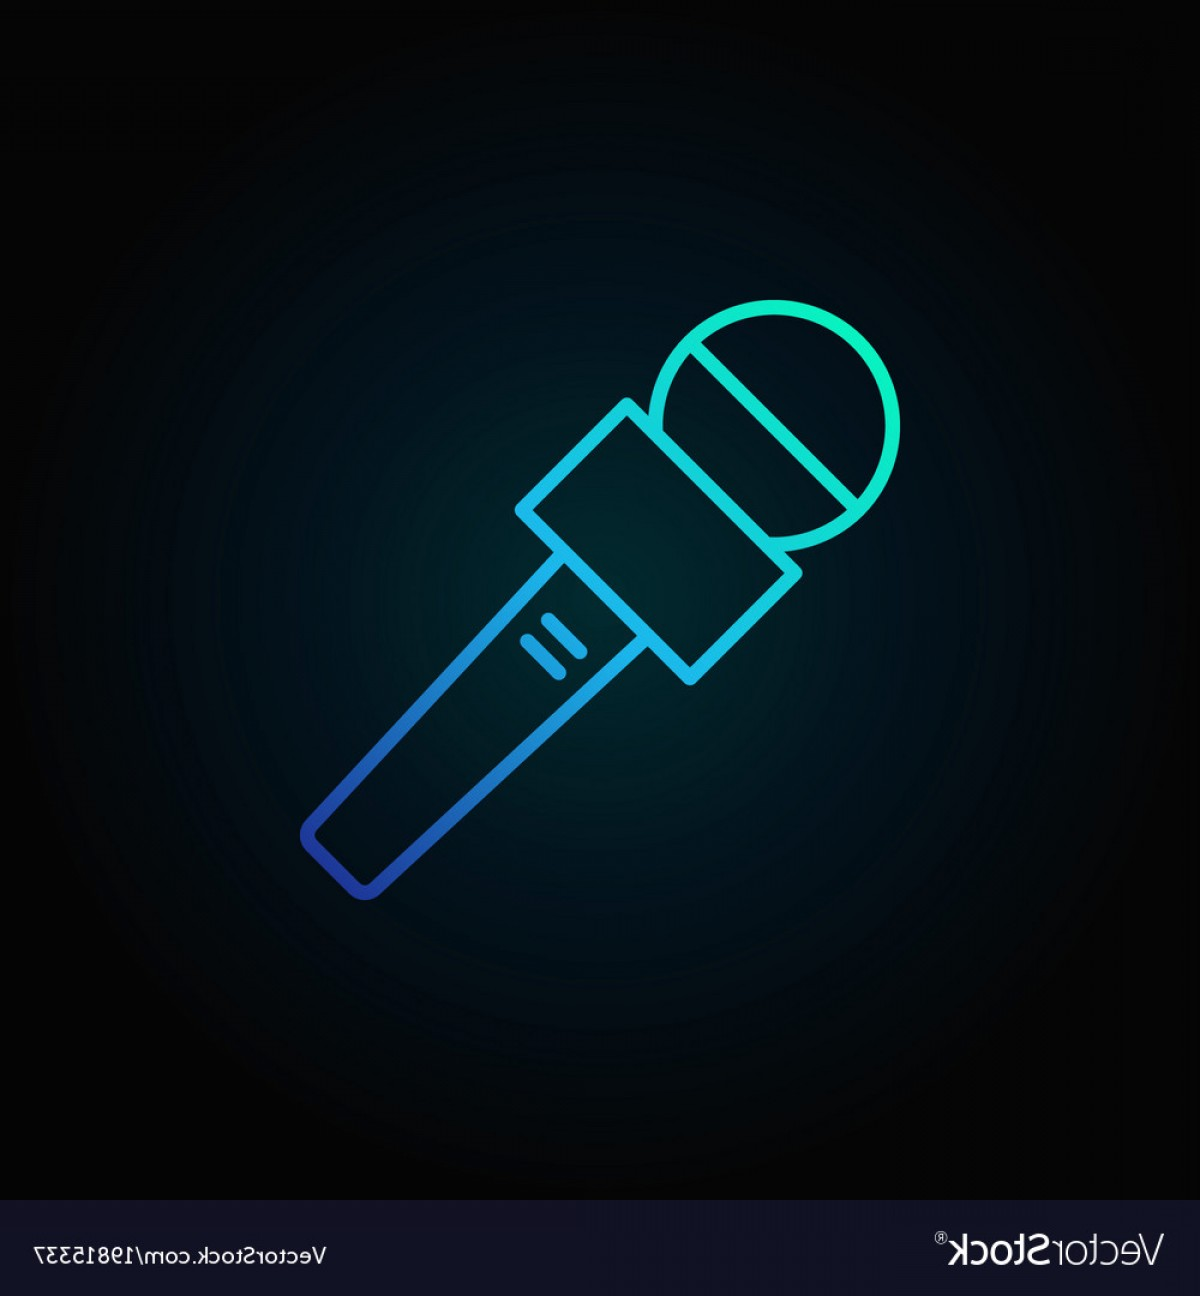 News Microphone Icon Vector: News Microphone Blue Icon On Dark Vector